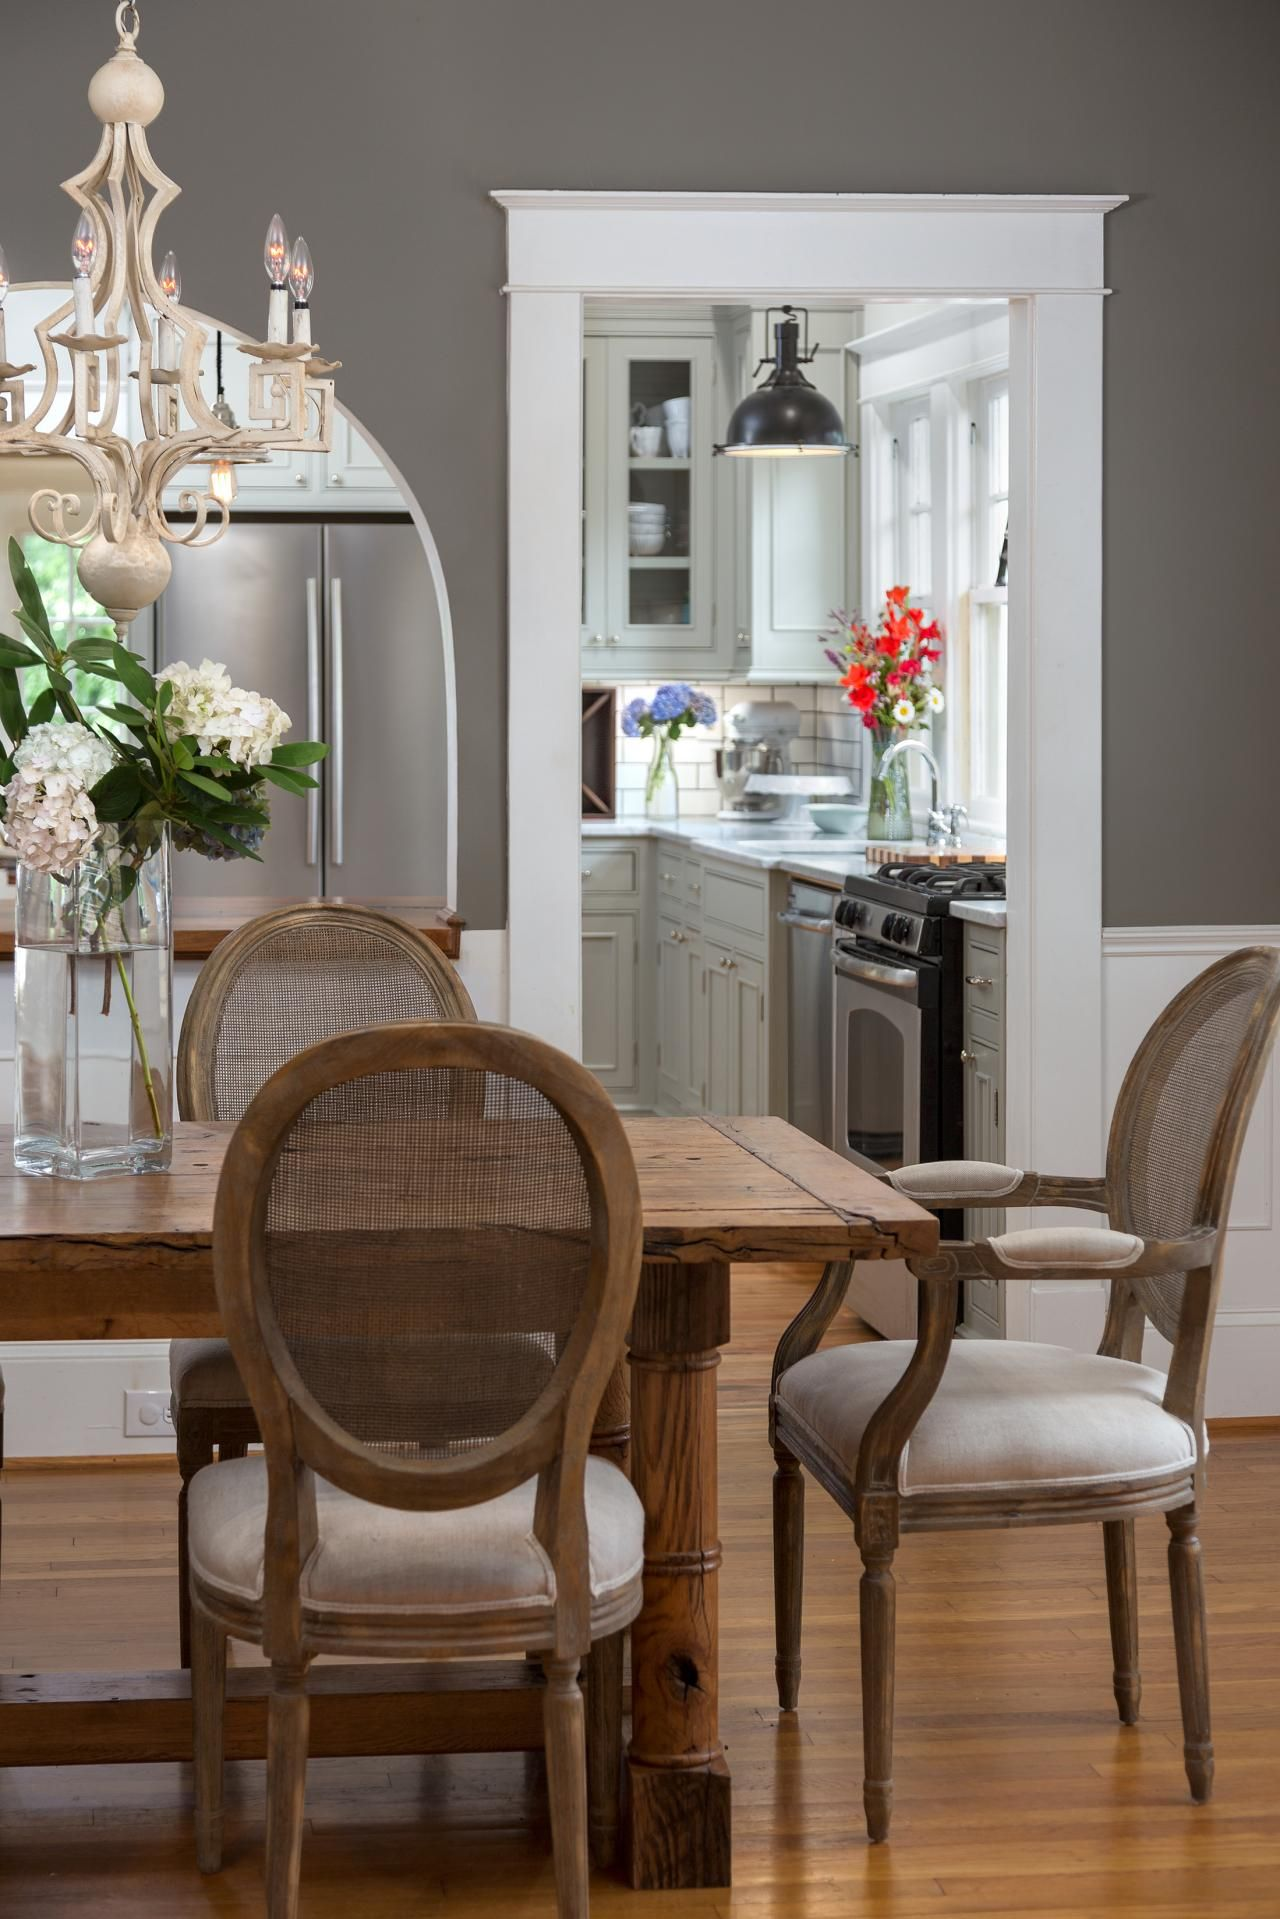 Chairs And Table This Deep Gray Dining Room Blends Country And Traditional  Styles For A Refined Farmhouse Look. A Cream Chandelier Lends Elegance To  The ...